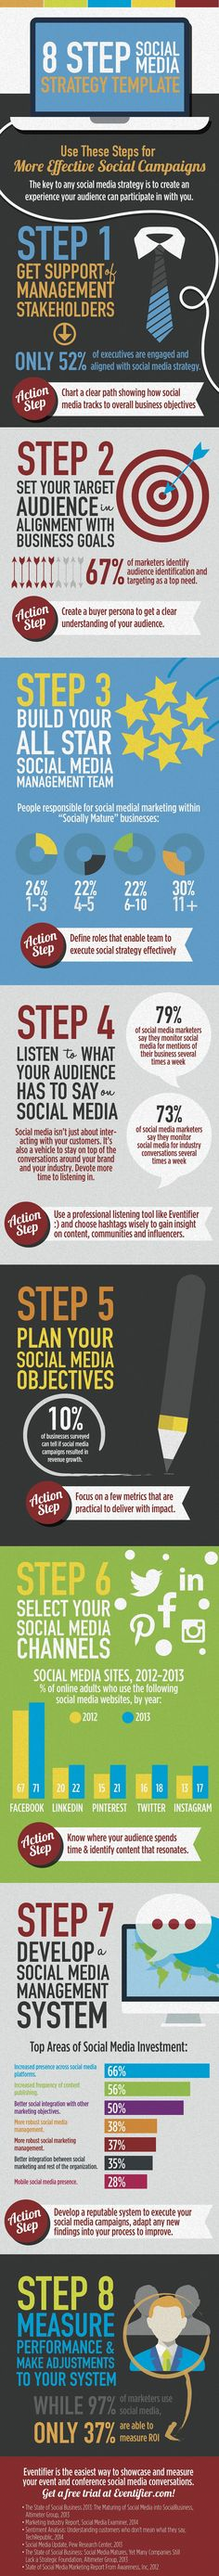 8 Step Social Media Marketing Strategy:  Having a social media marketing plan isn't just about creating a Facebook page or Twitter profile and automating your company updates. There's much more to it if you really want to make the most out of social media when it comes to effectively promoting your products or services.